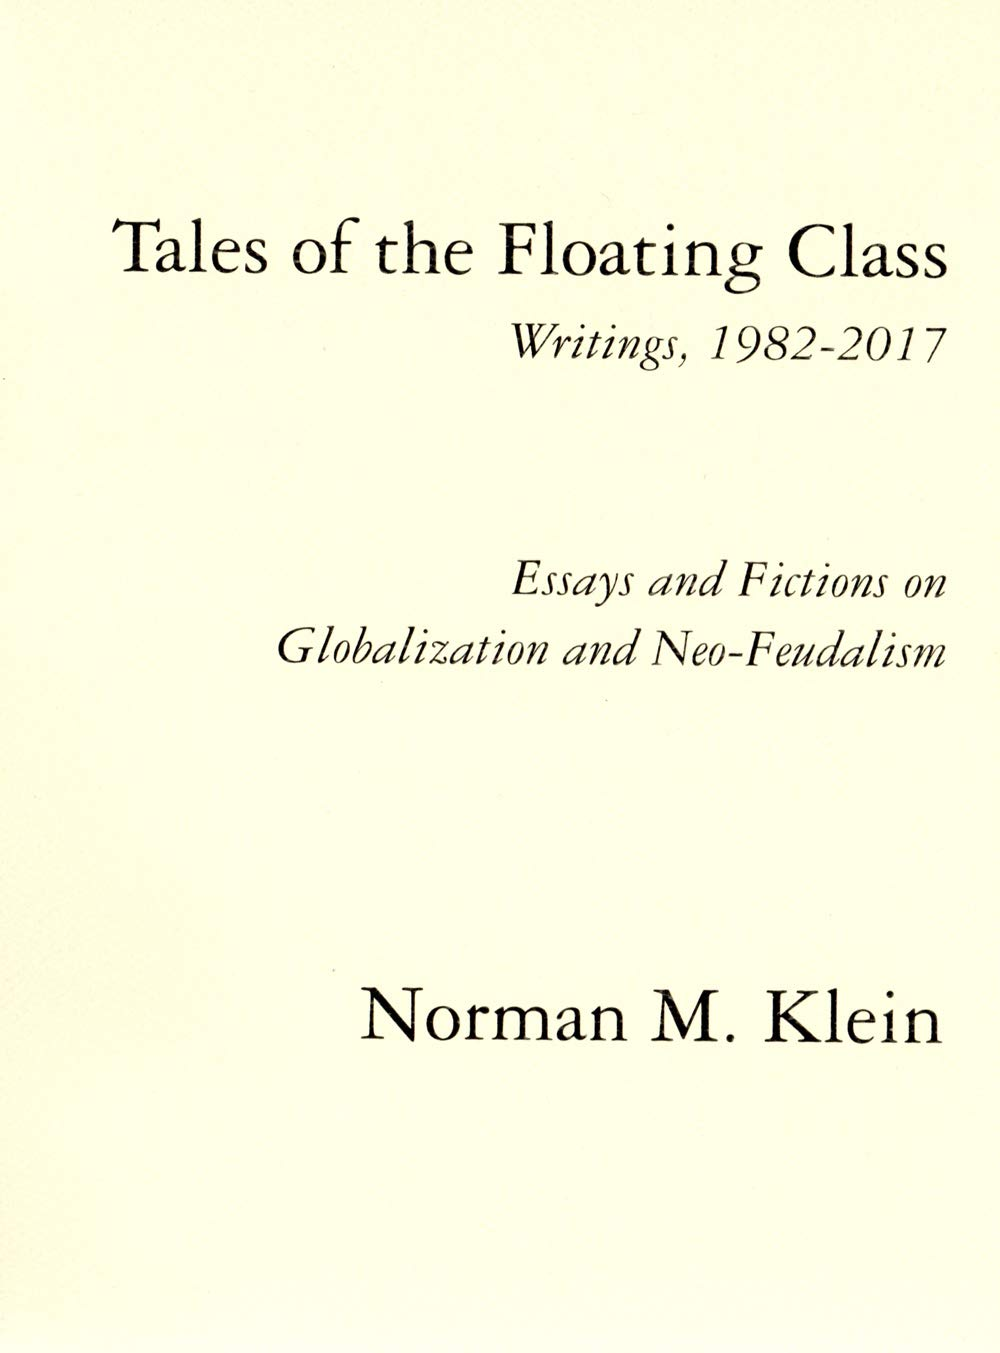 Tales of the Floating Class, Writings 1982-2017; Essays and Fictions on Globalization and Neo-Feudalism